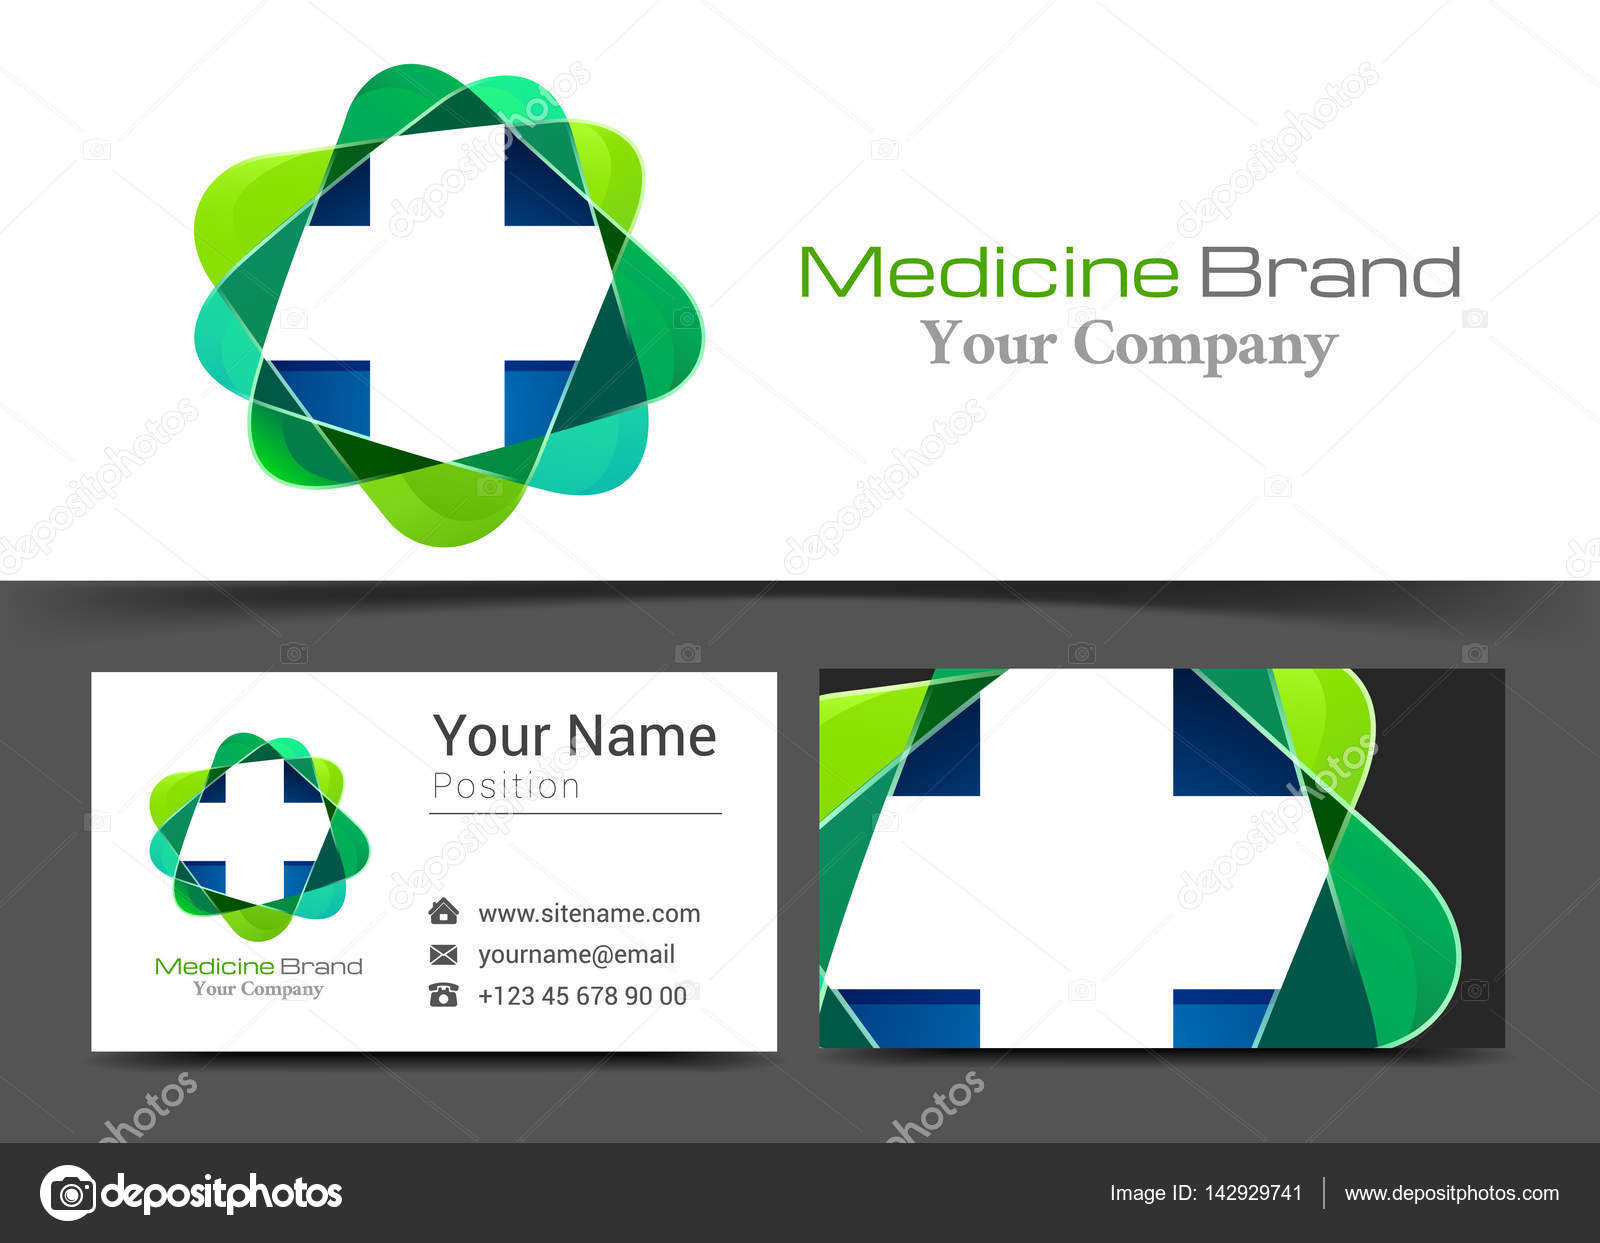 Health care business cards image collections free business cards hospital business card images free business cards health care business cards image collections free business cards magicingreecefo Gallery